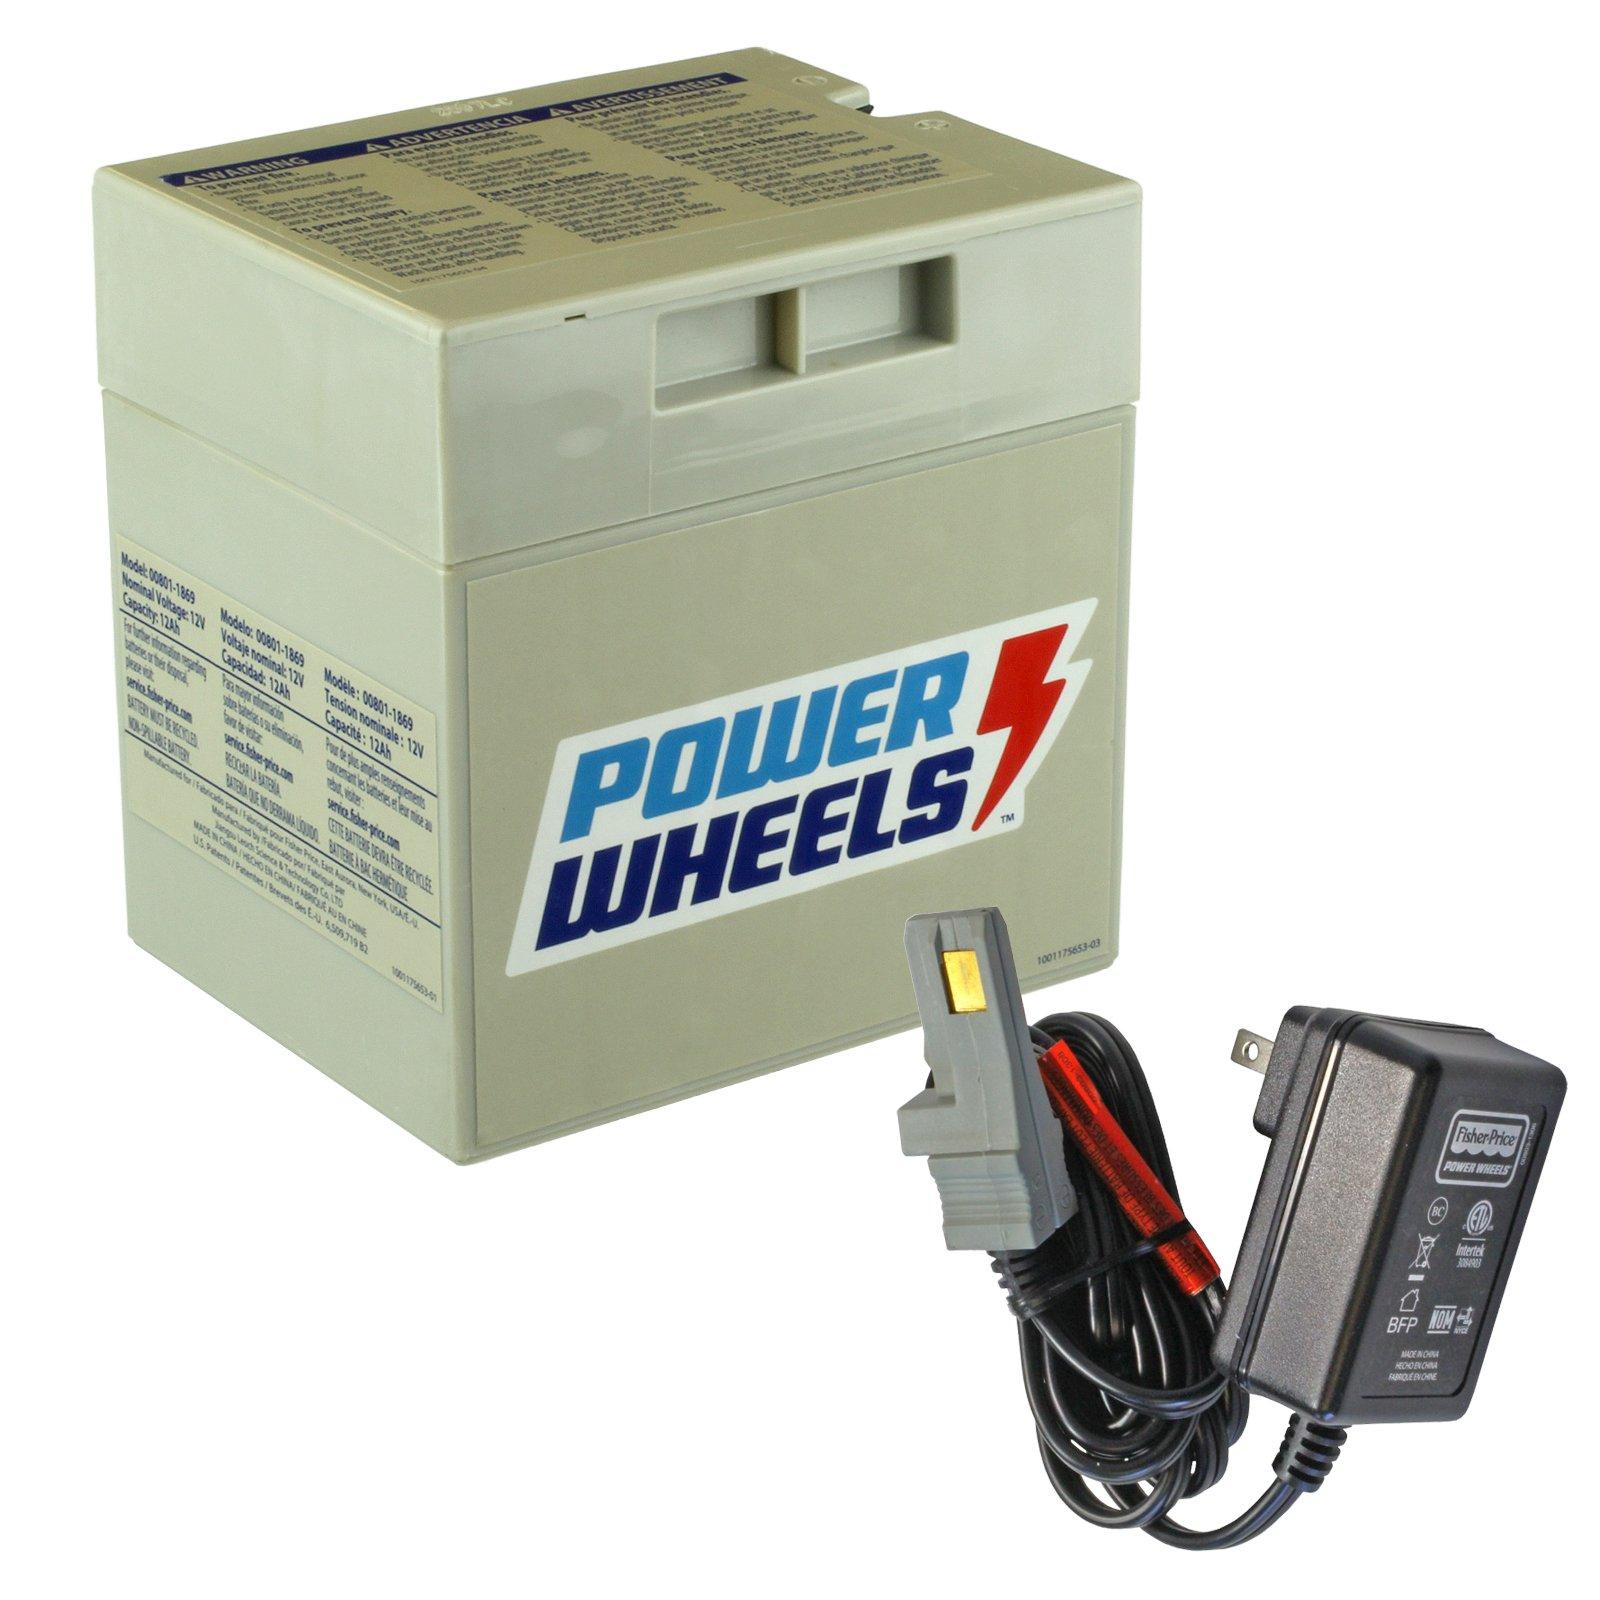 Power Wheels 12V Gray Battery with Charger on